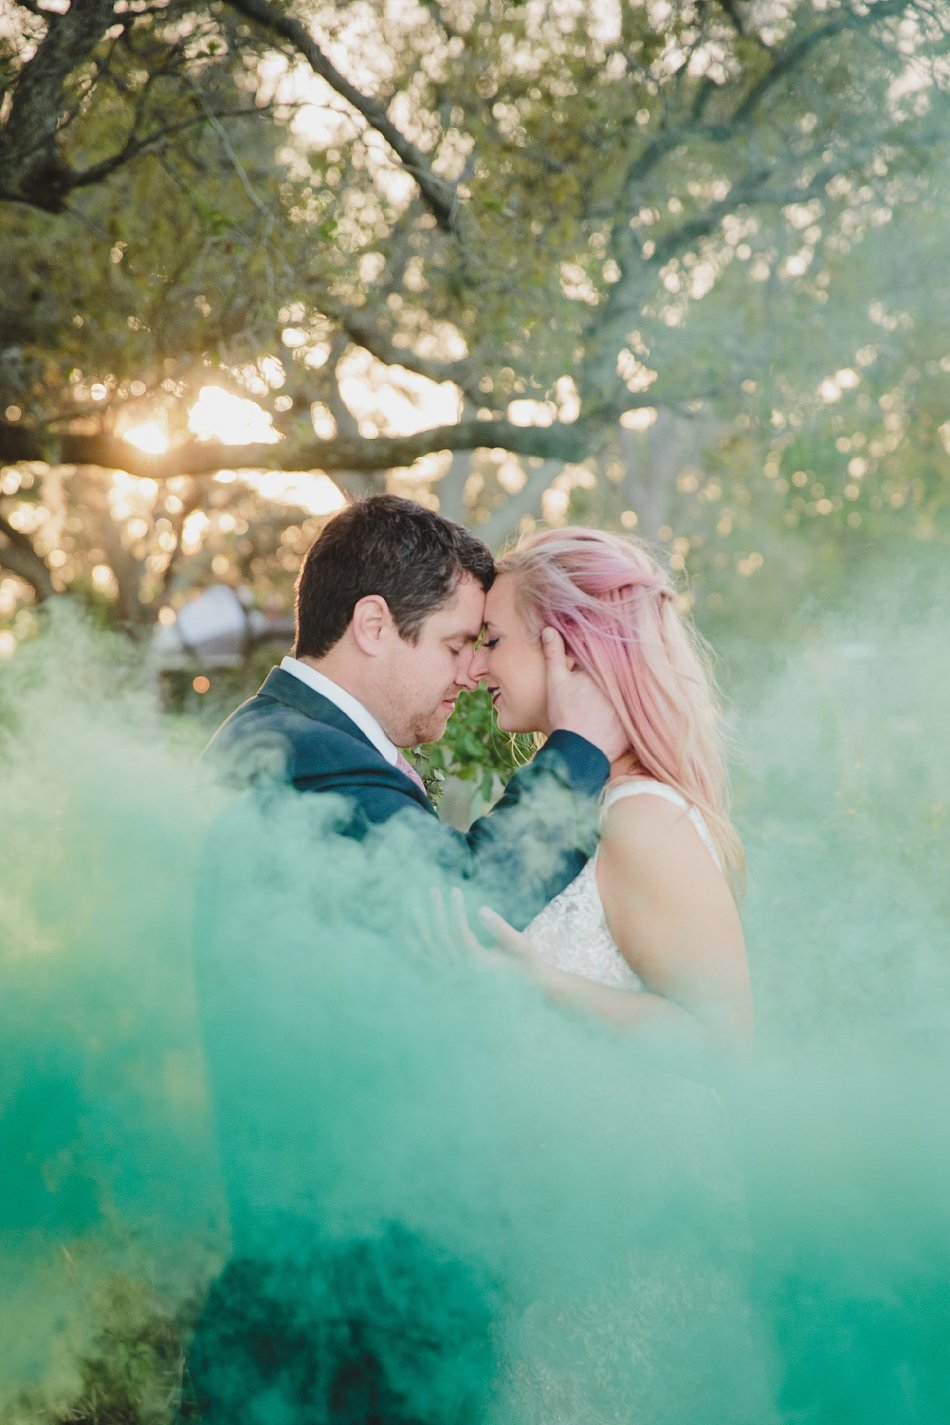 backyard wedding,best burgers,bride,burgers,downtown,first look,food truck,green smoke,jacksonville,pink hair,river,smoke bomb,smoke grenade,stephanie w photography,